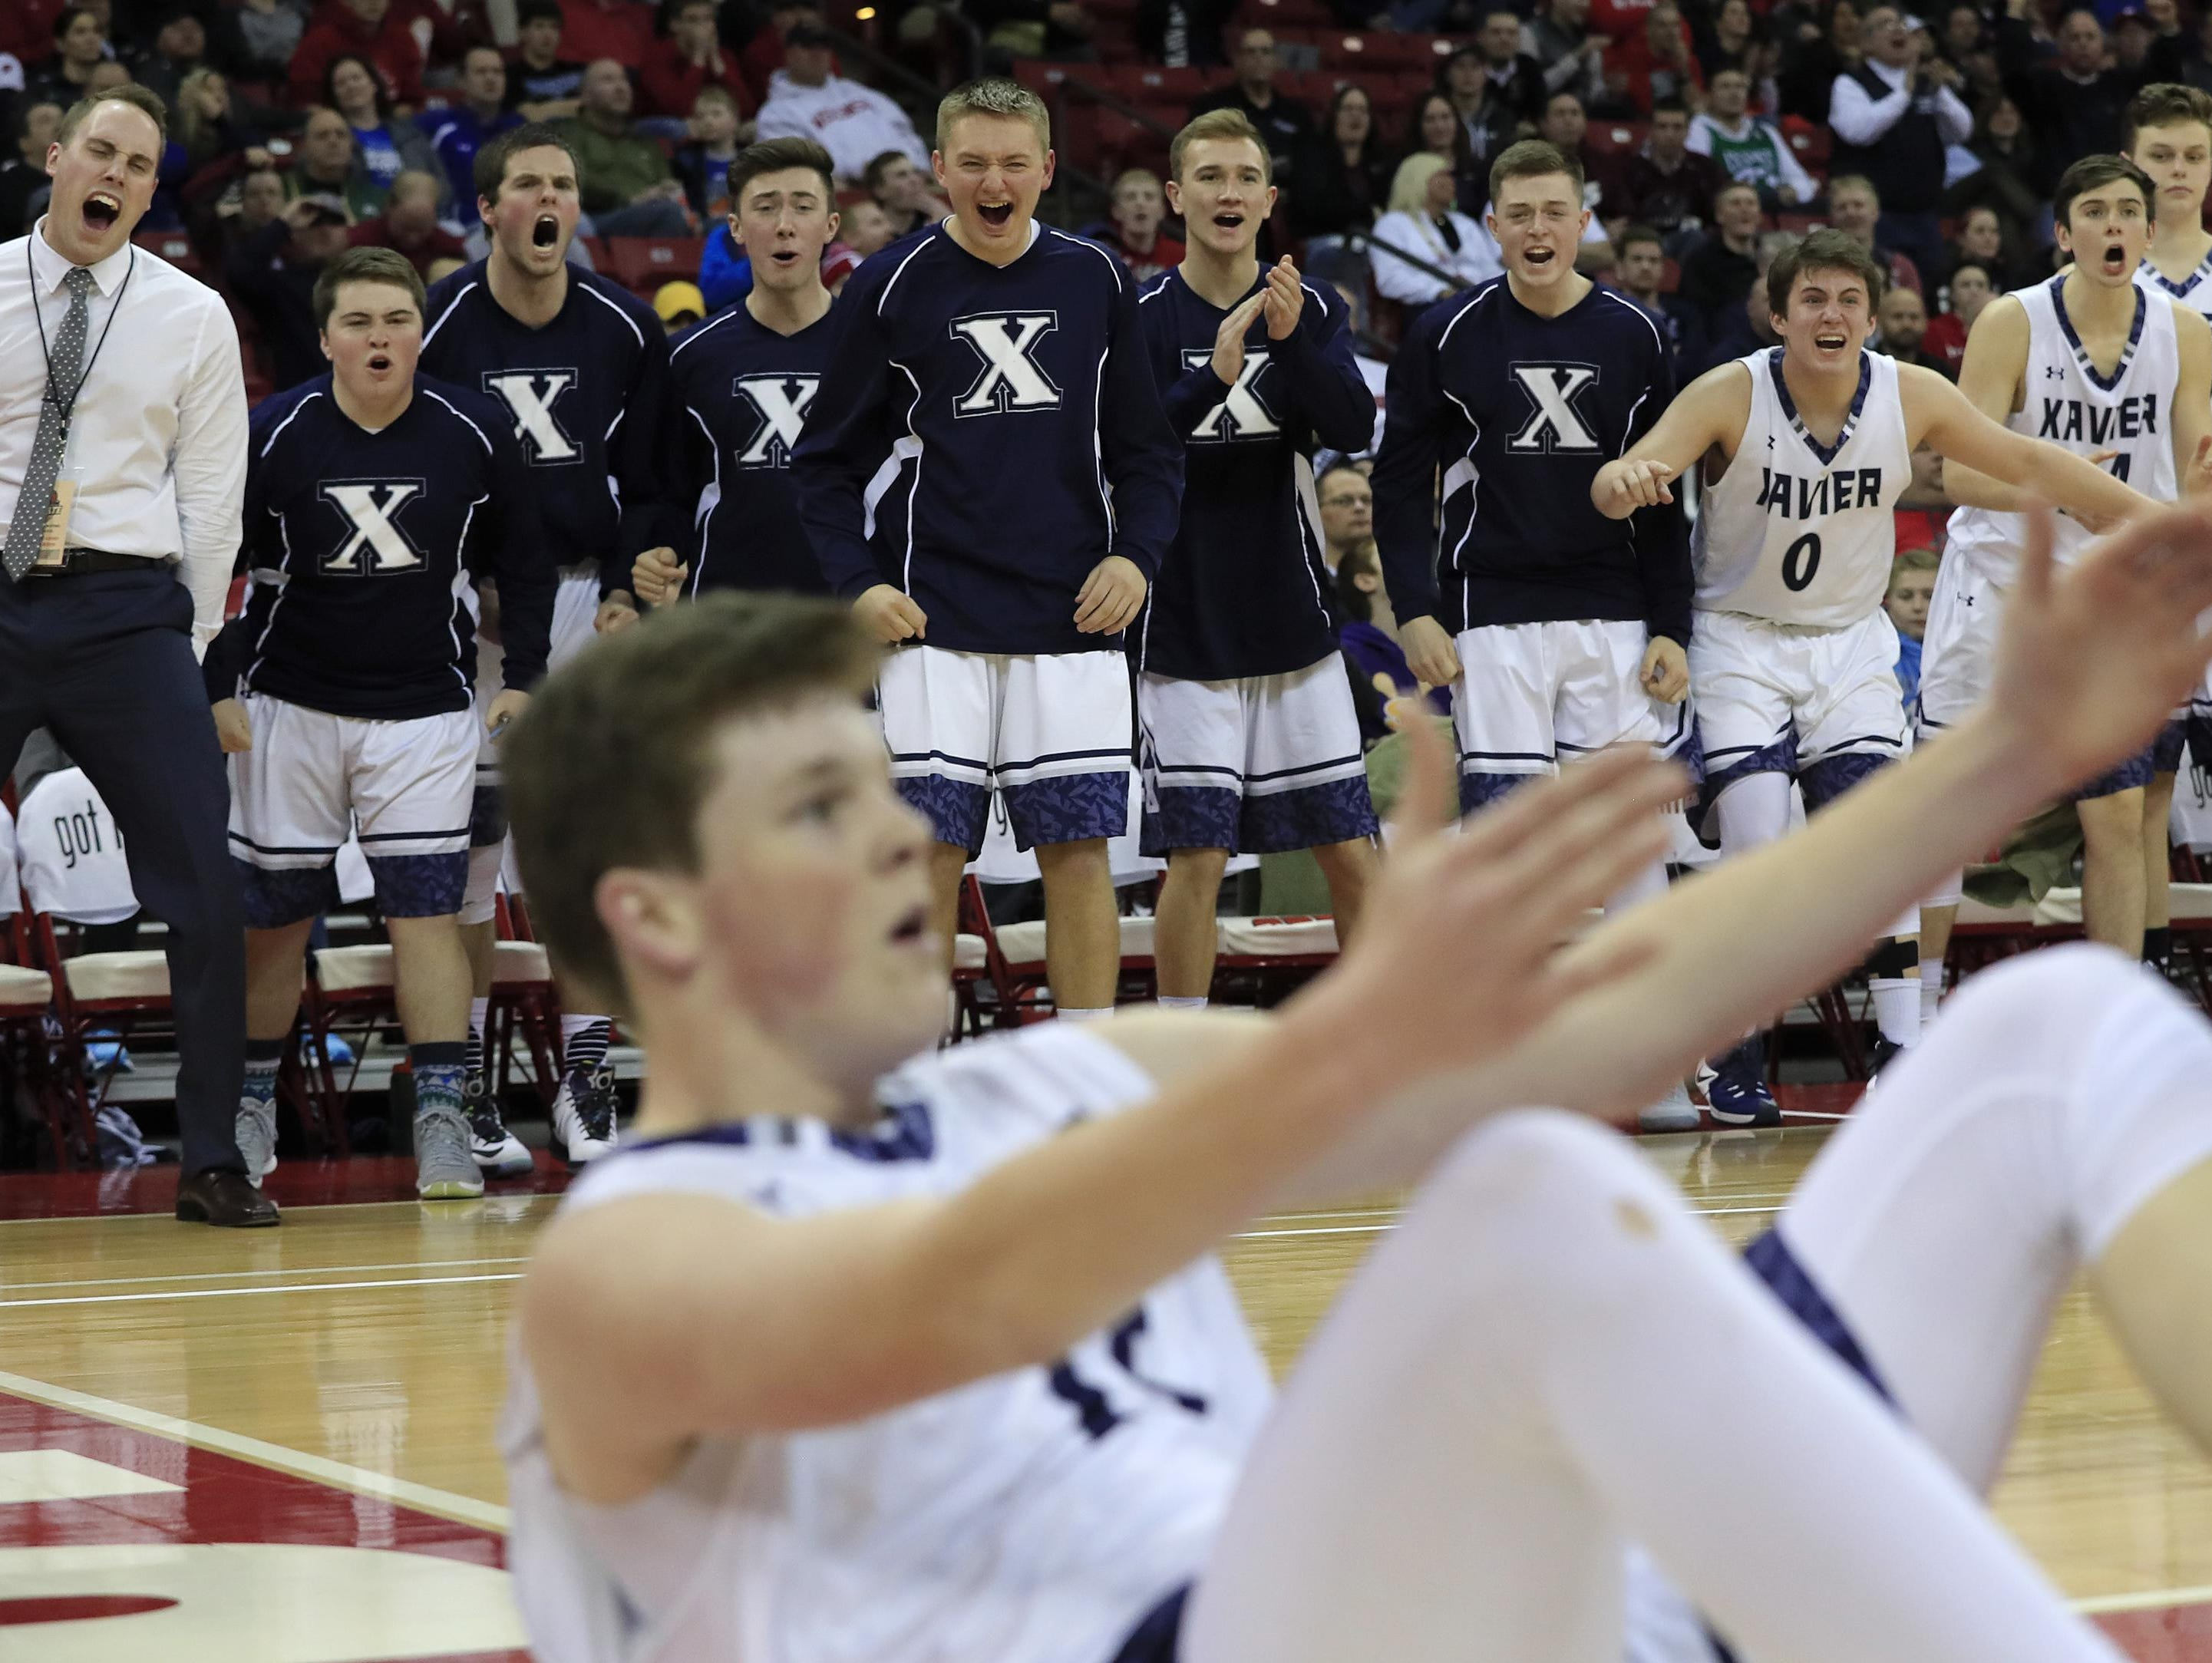 Xavier's bench reacts after Nate DeYoung (15) drew a foul on Prescott's Owen Hamilton (33) in the WIAA Division 3 championship game at the boys basketball state tournament at the Kohl Center on Saturday. Xavier won the game, 73-47.